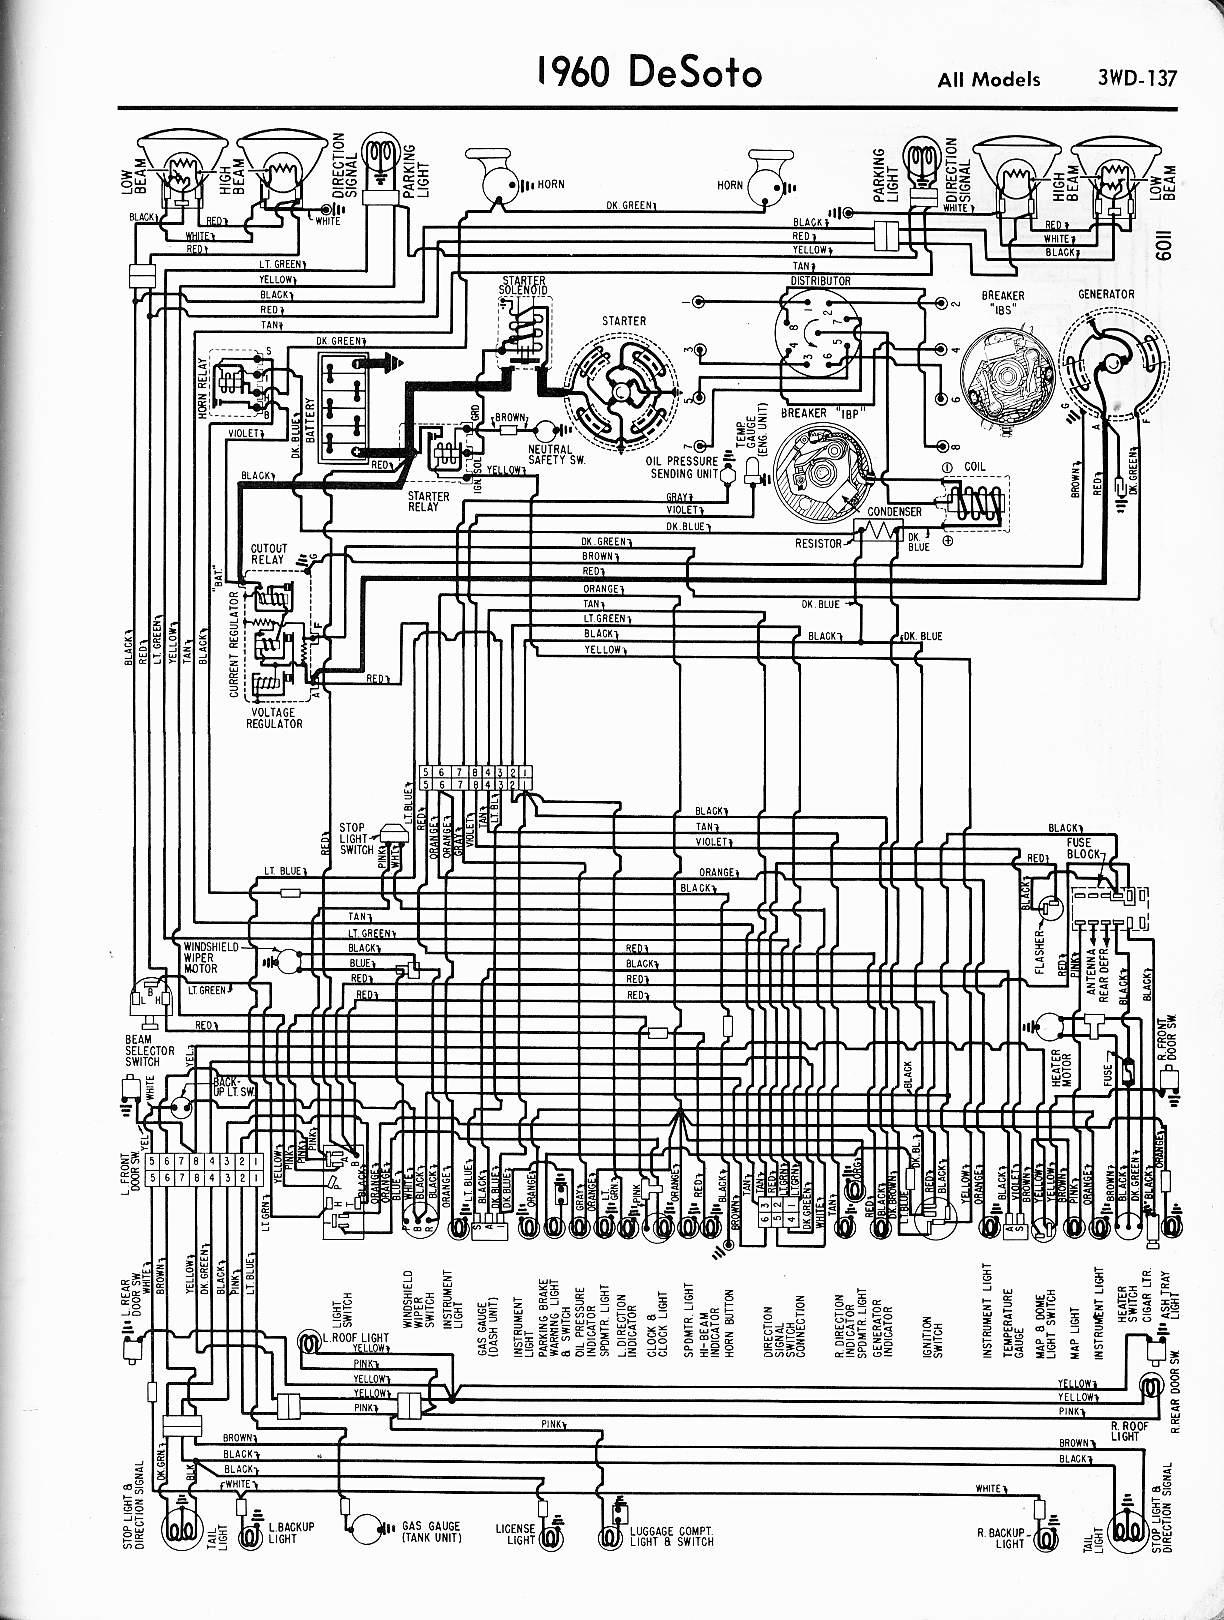 1965 mustang ignition coil wiring diagram zenith updraft carburetor 1959 chrysler free engine image for